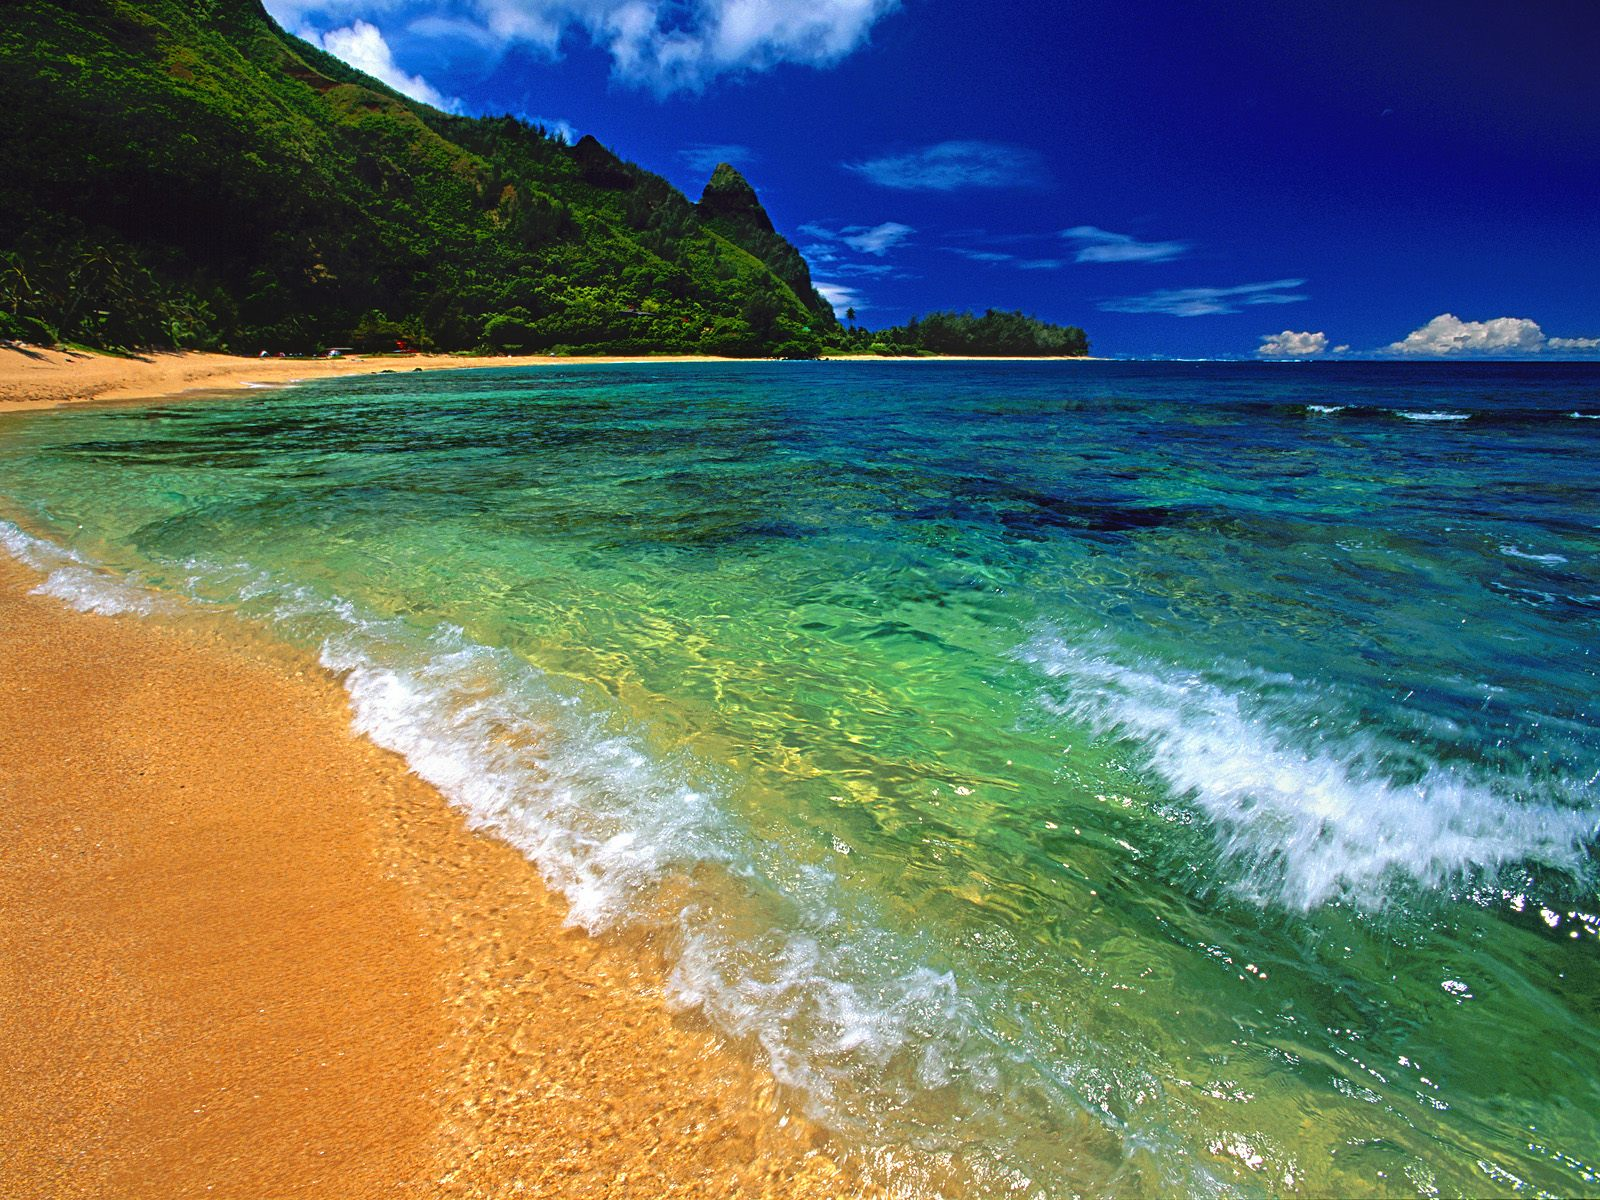 hawaii beach Down Syndrome Prenatal Testing 1600x1200